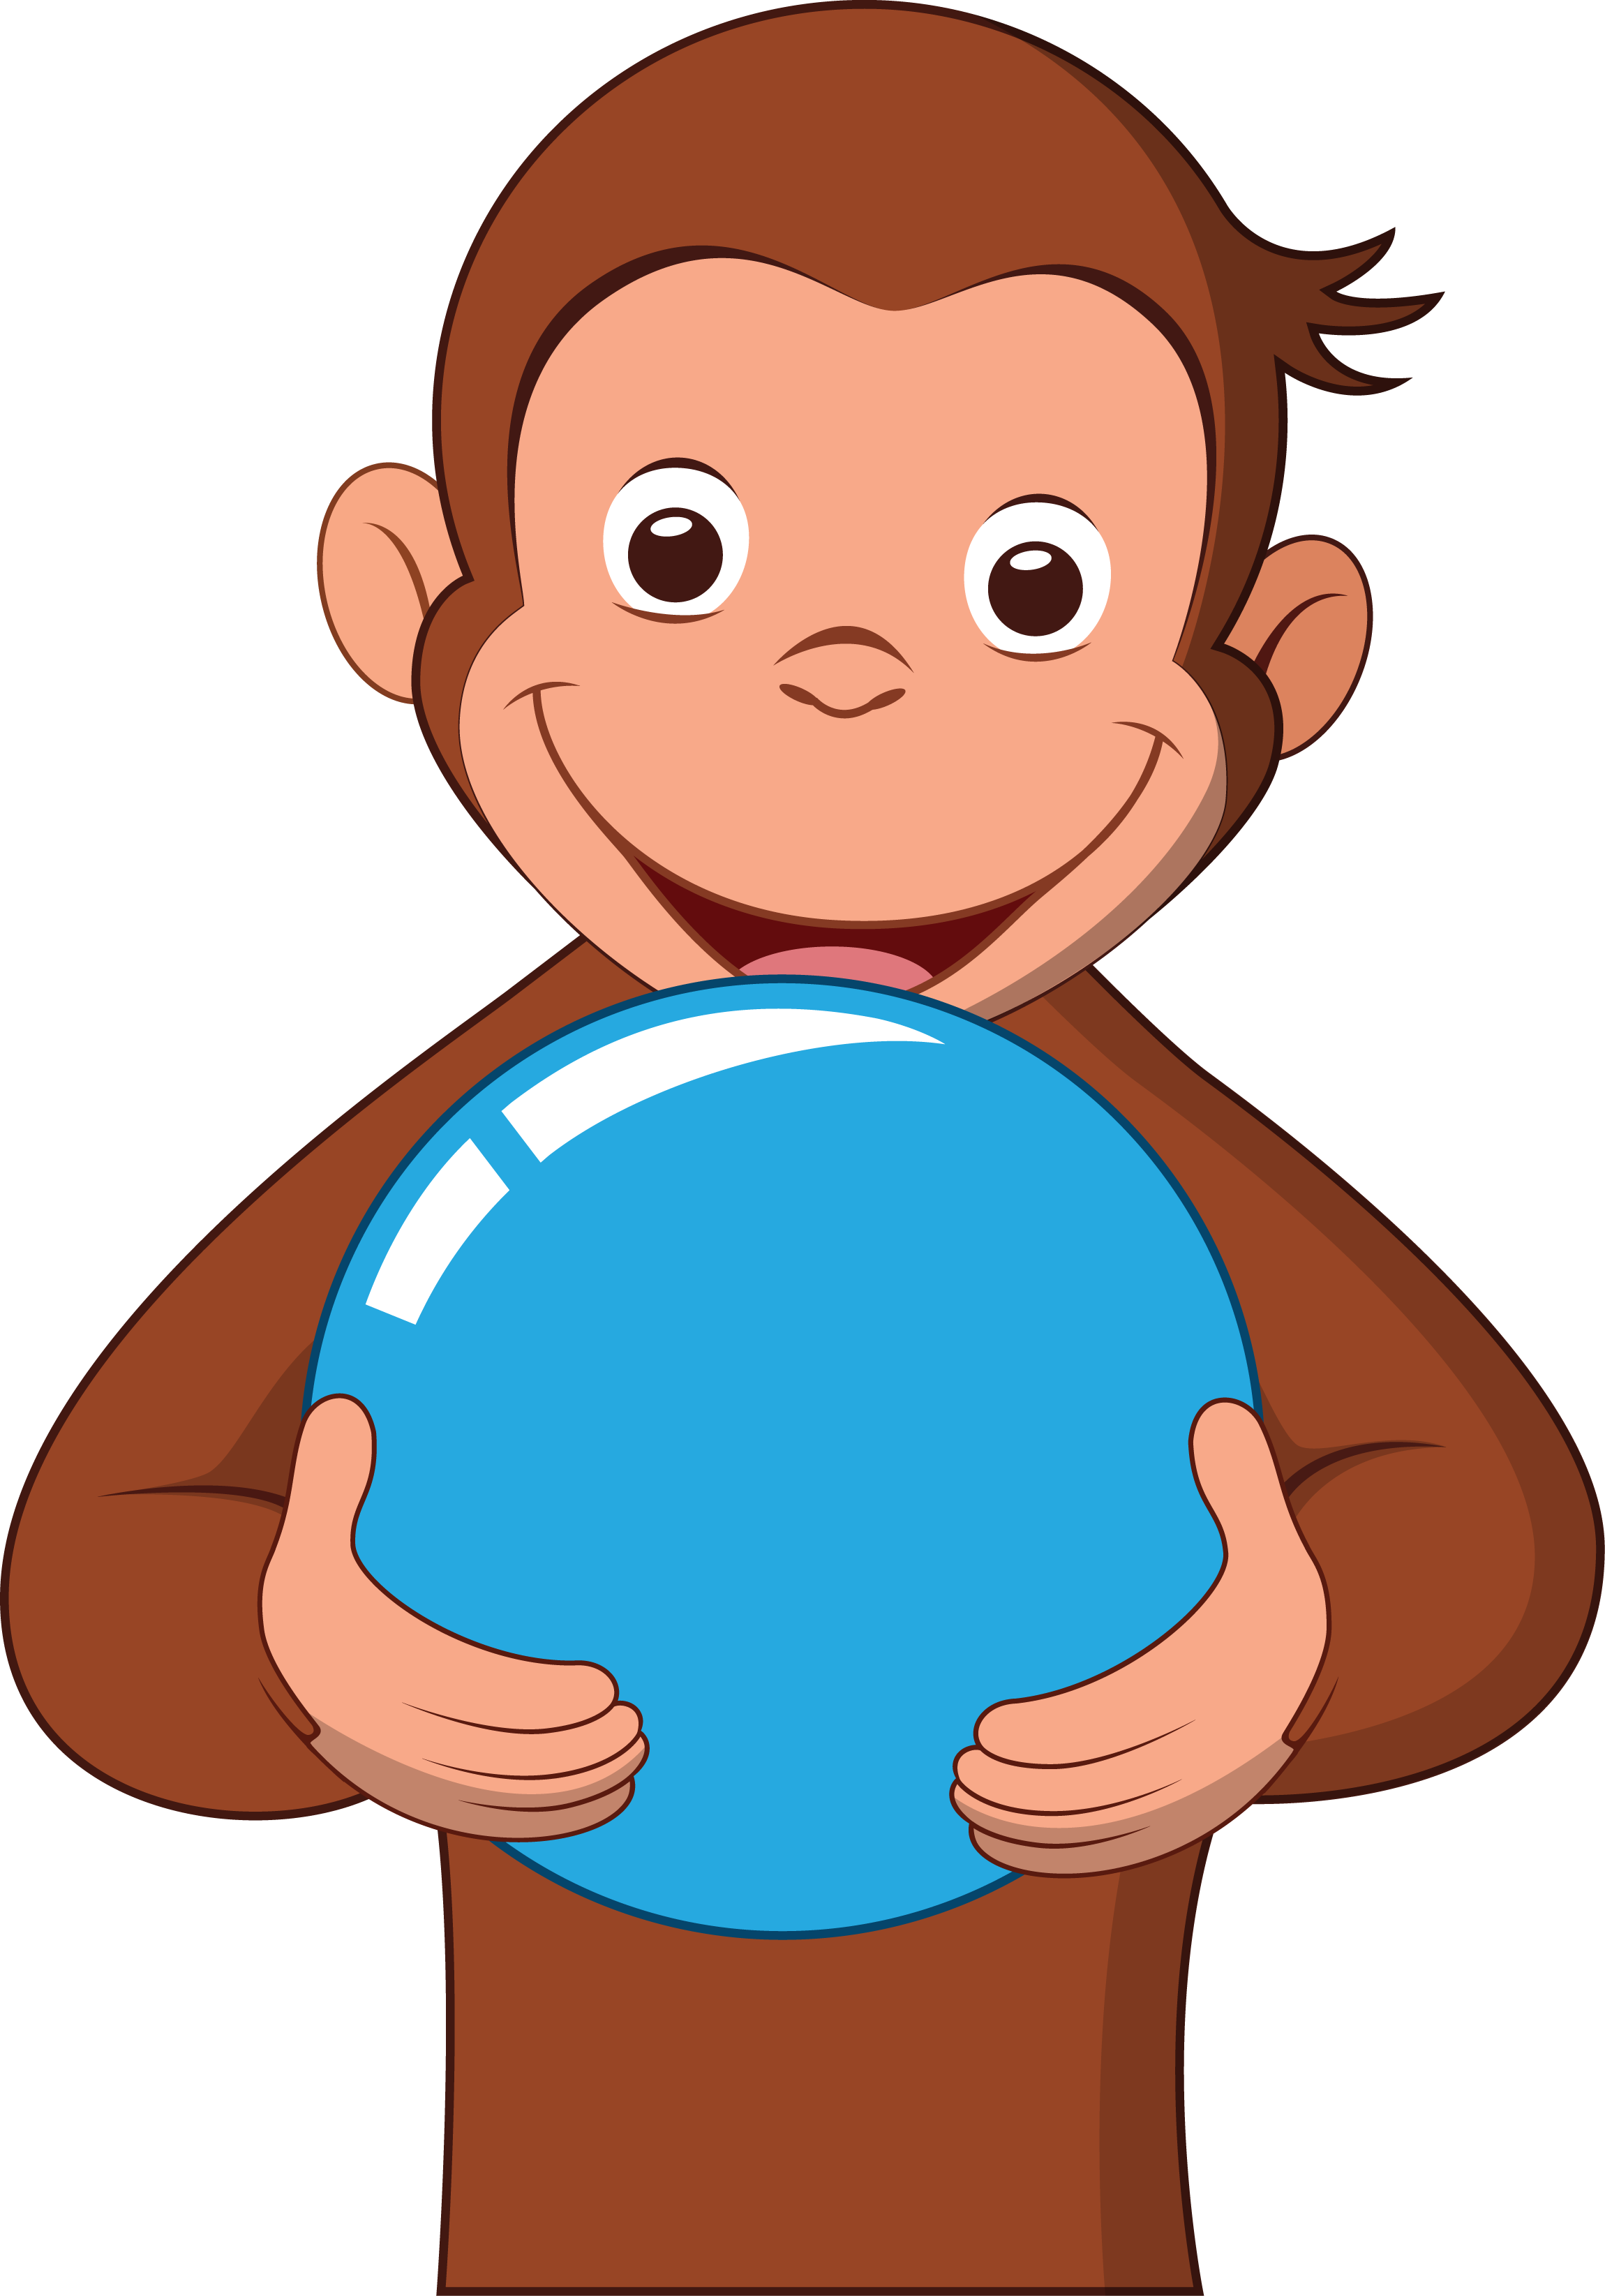 Curious george balloons png. Hd transparent images curiousgeorgegooglesearchwallpaperwpt